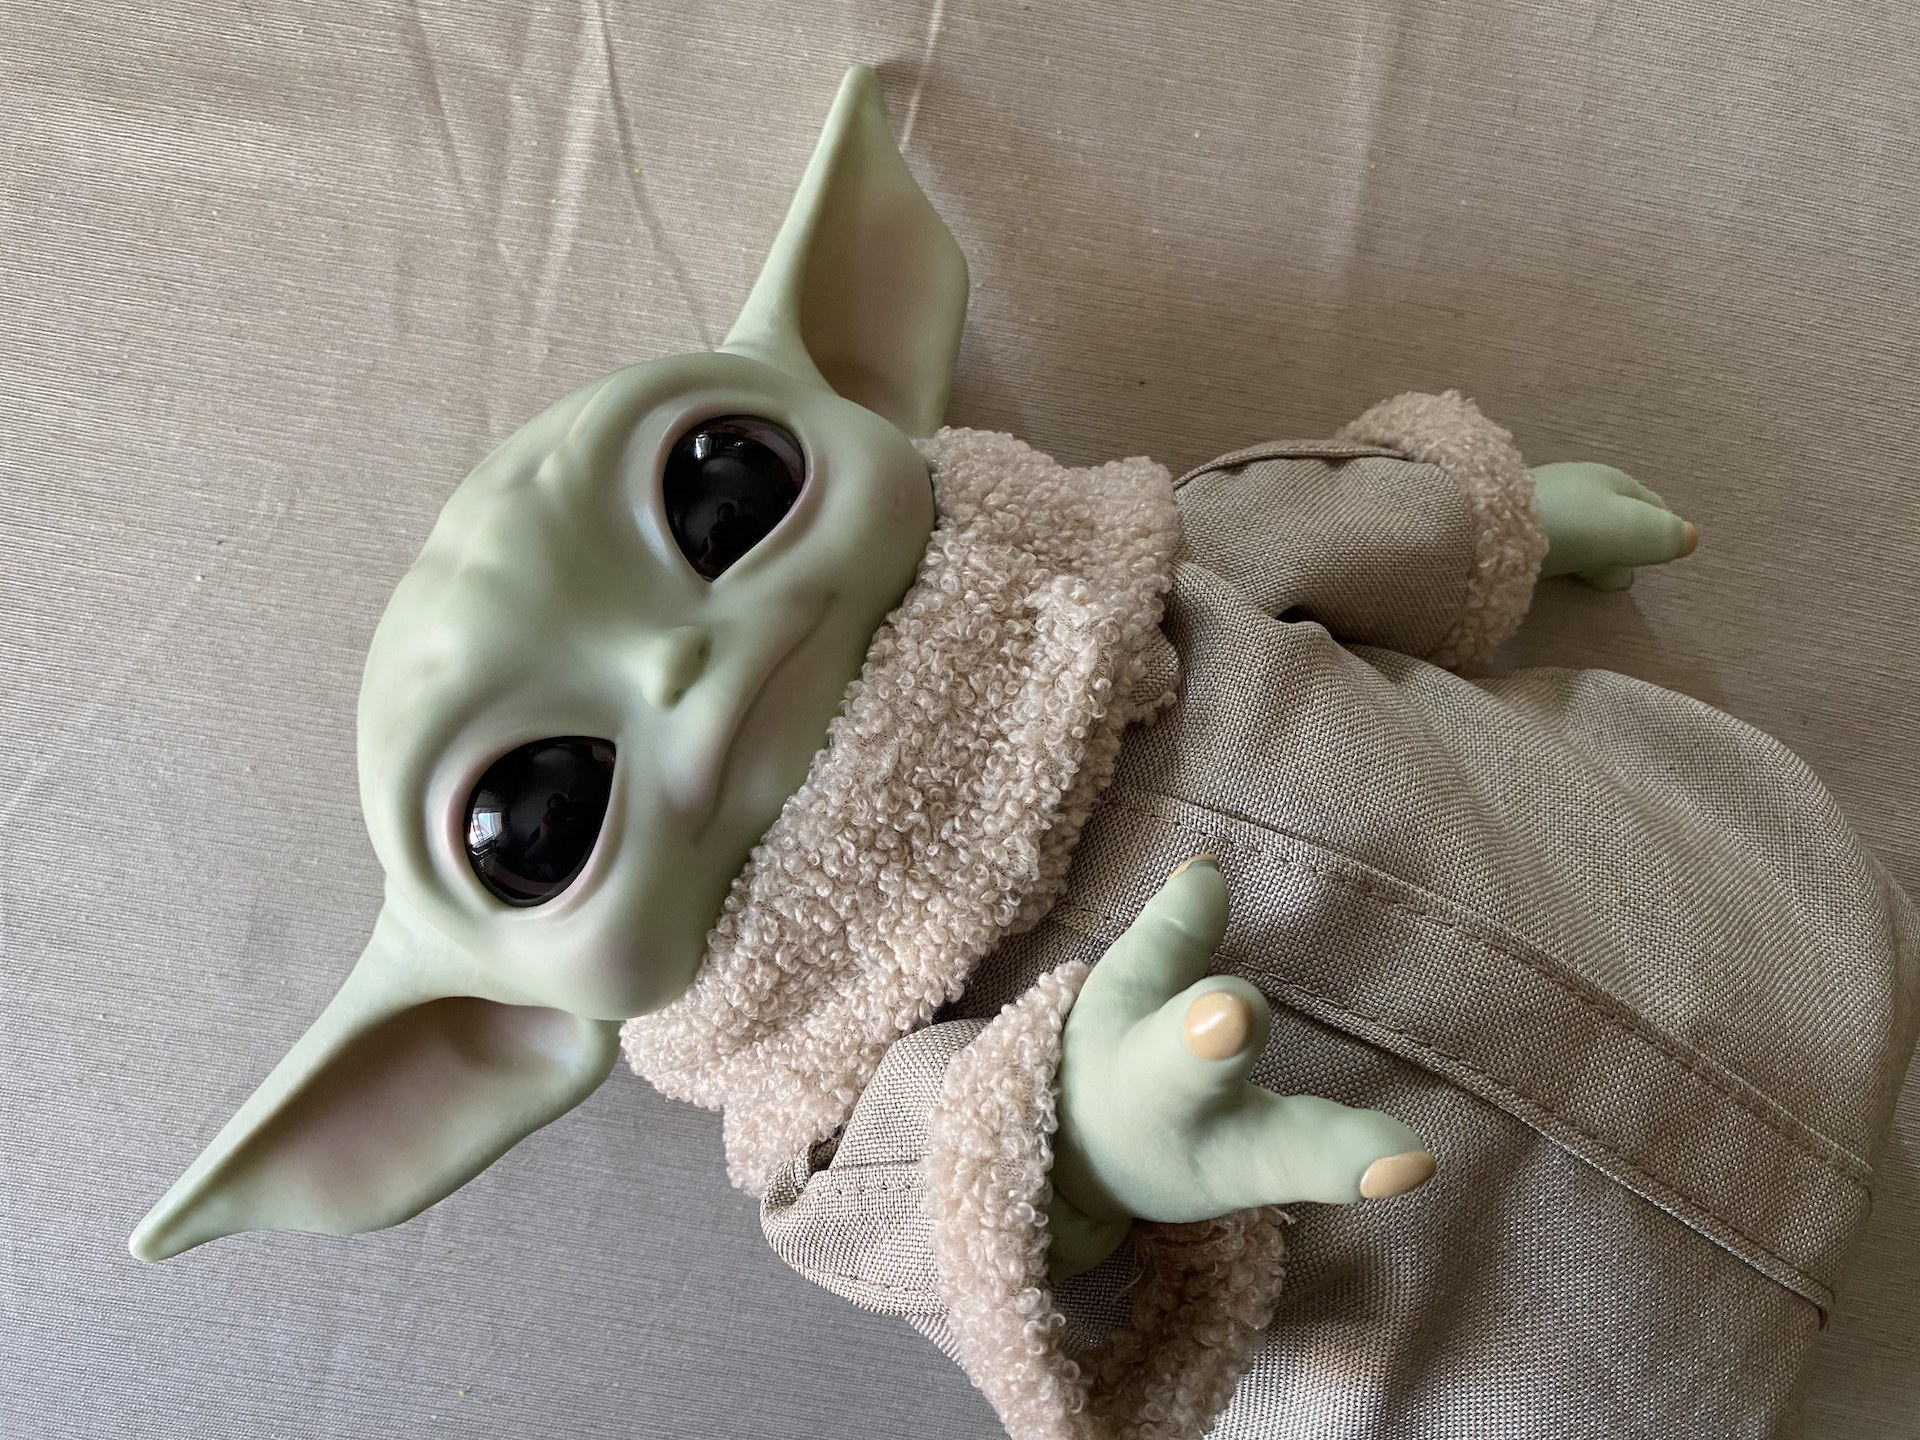 This official Baby Yoda 11-inch plush toy is adorable